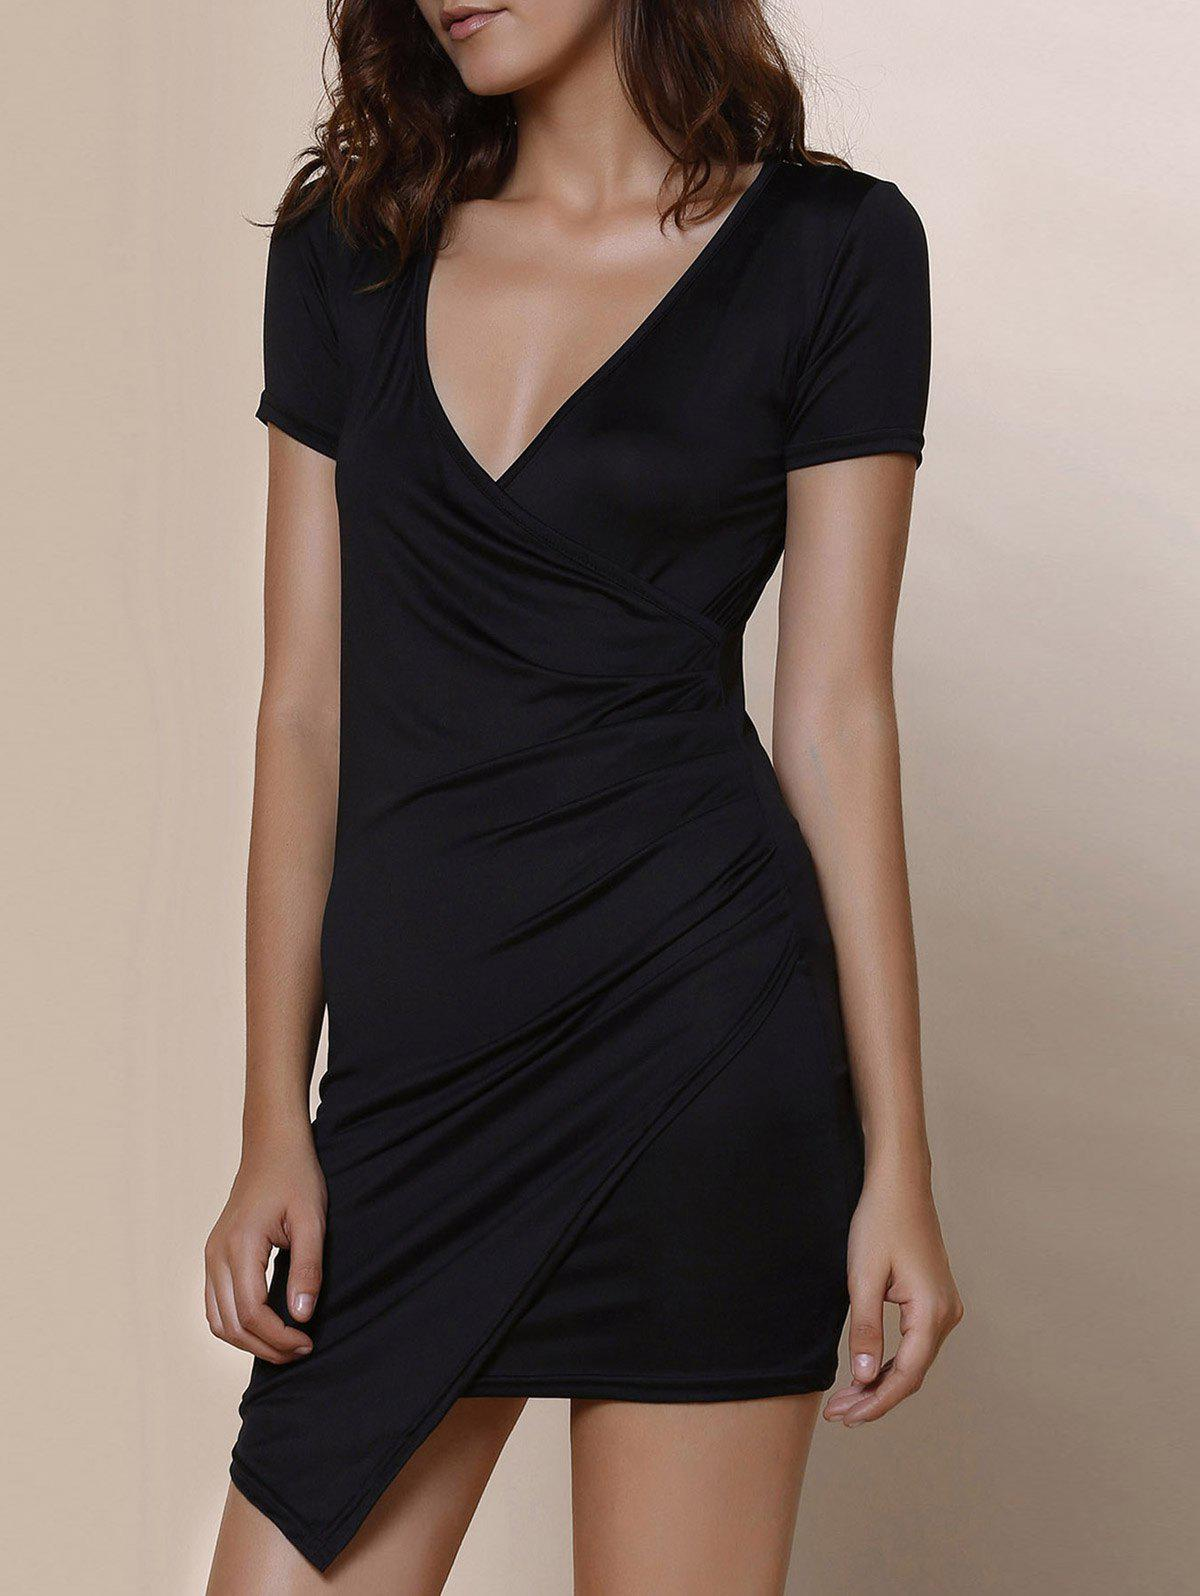 Plunging Collar Short Sleeve Solid Color Bodycon Dress - BLACK XL